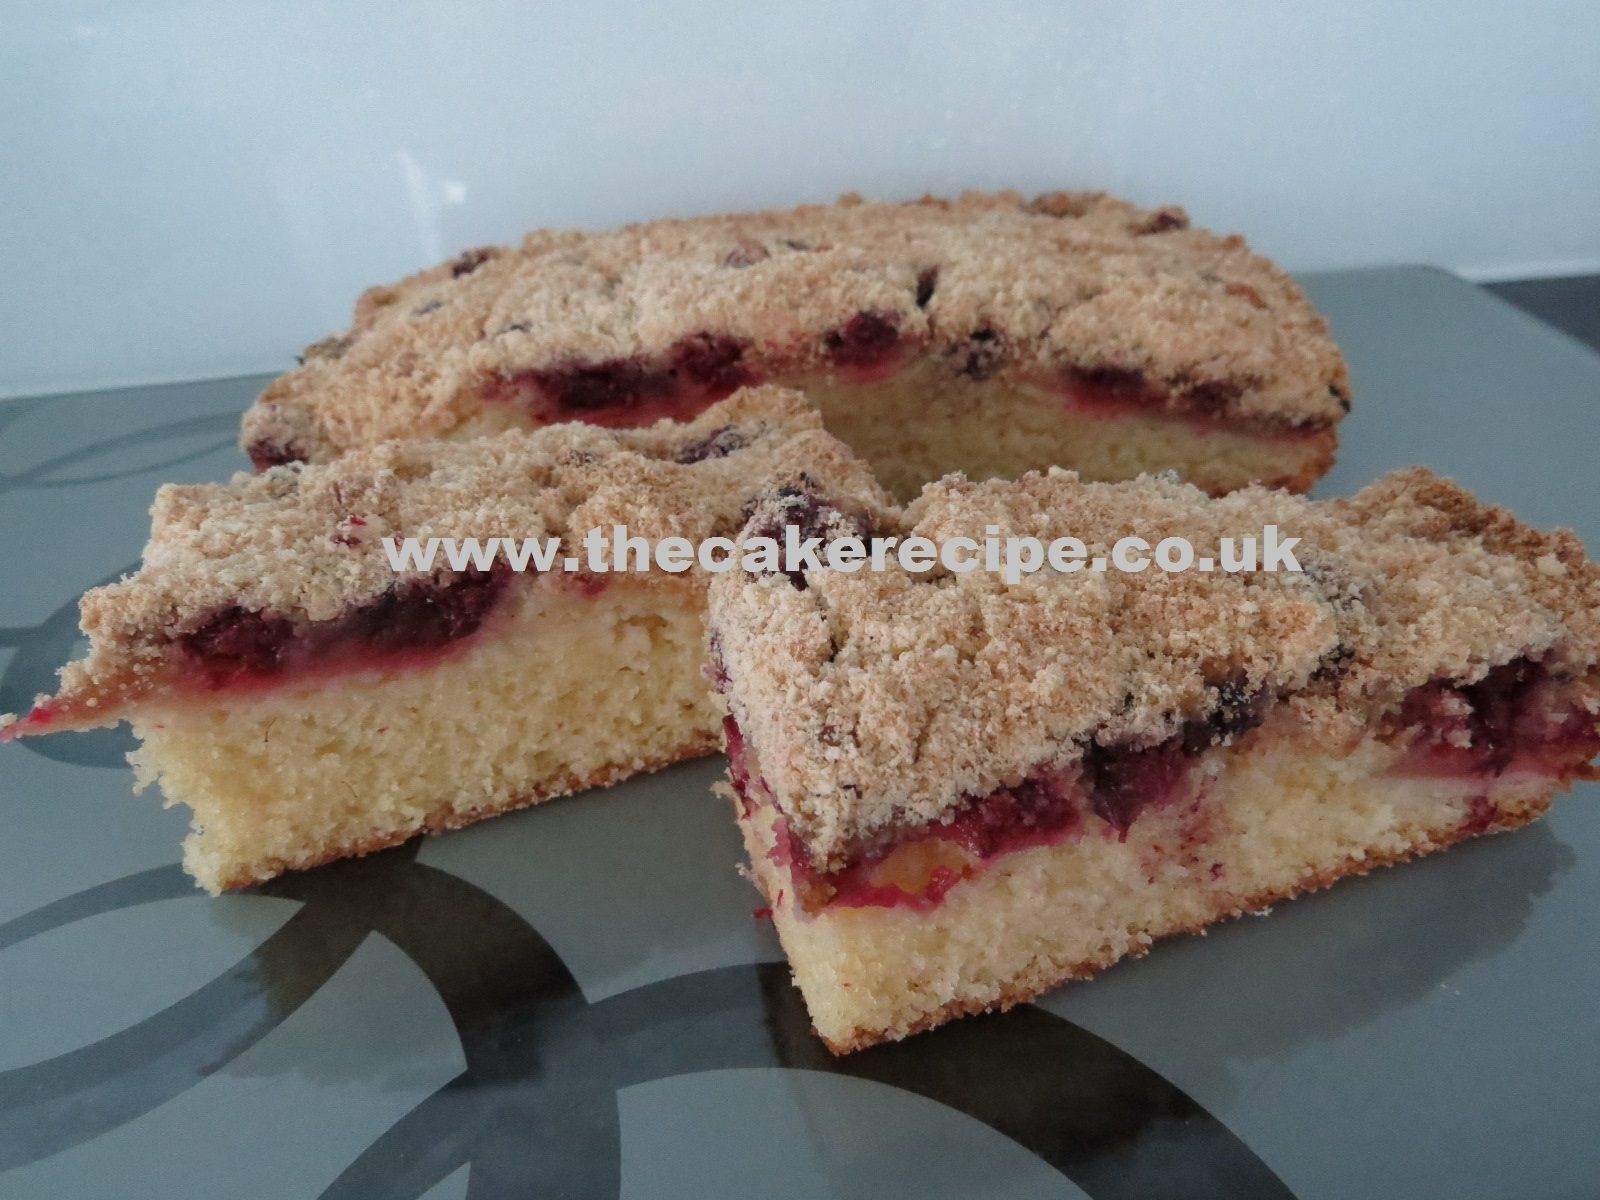 Blackberry And Apple Crumble Cake Cakes The Cake Recipe Free Easy Baking Recipes For Cakes Cupcakes Cookies Easy Baking Recipes Cake Recipes Baking